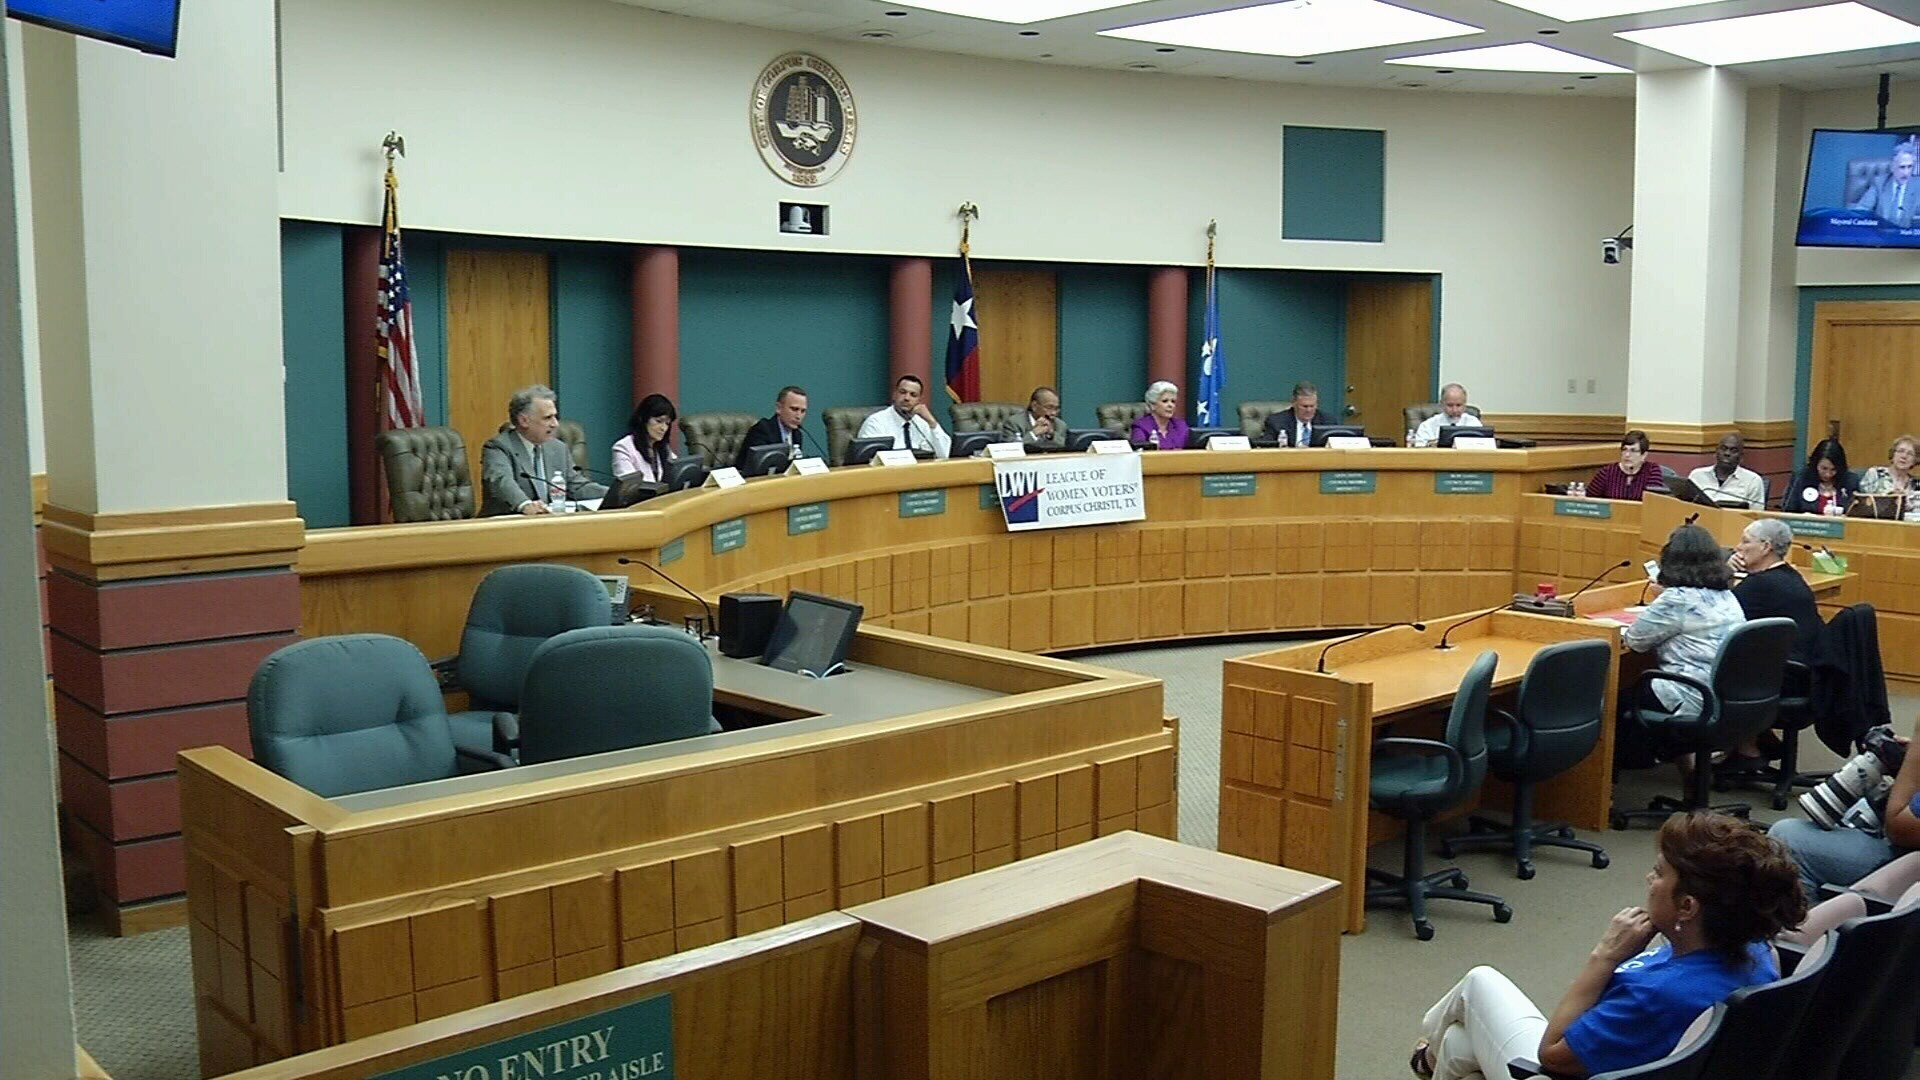 The forum was held at City Hall Thursday night, ahead of early voting for the special election which starts Monday.